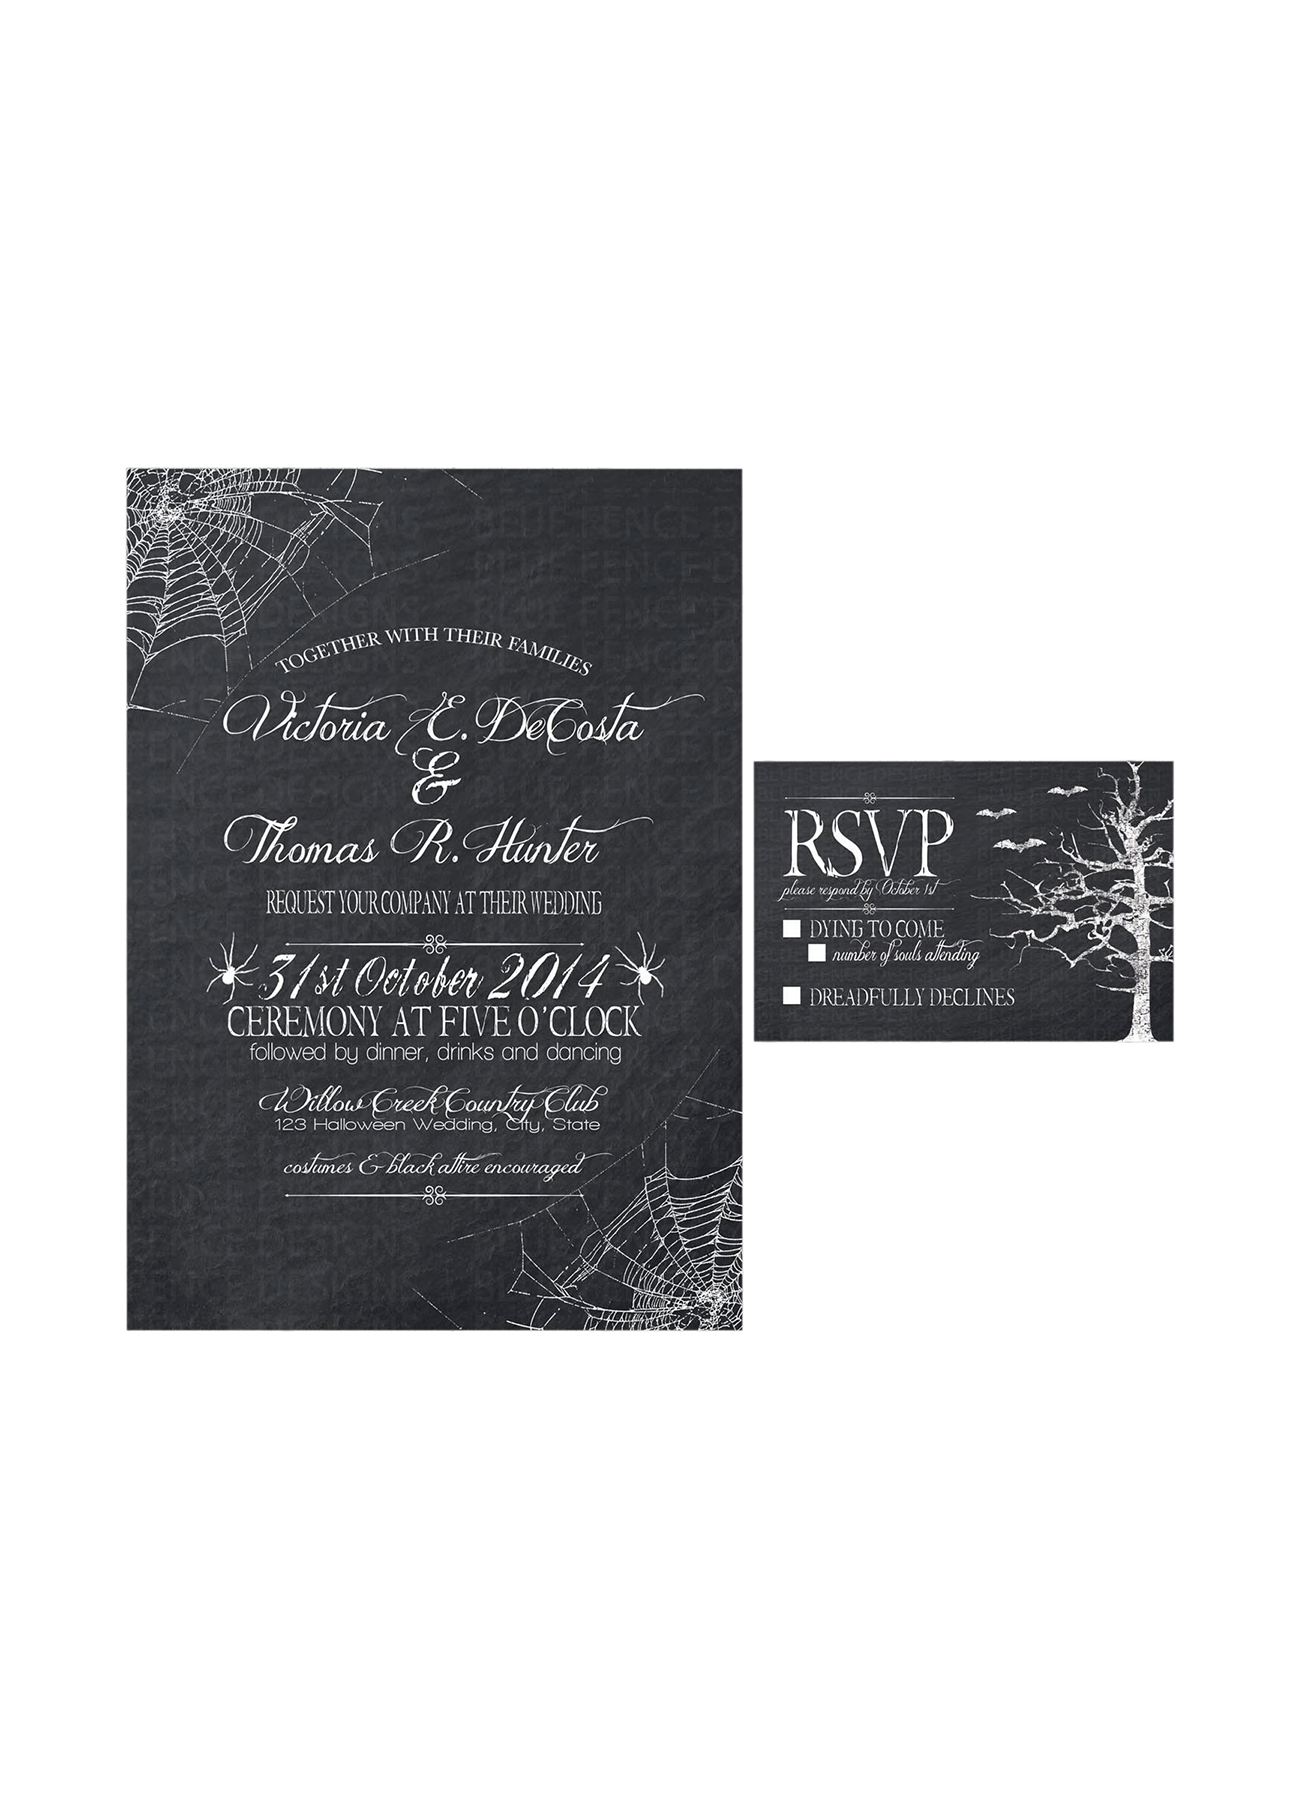 Halloween Wedding Invitations Your Guests Will Love | Real Simple